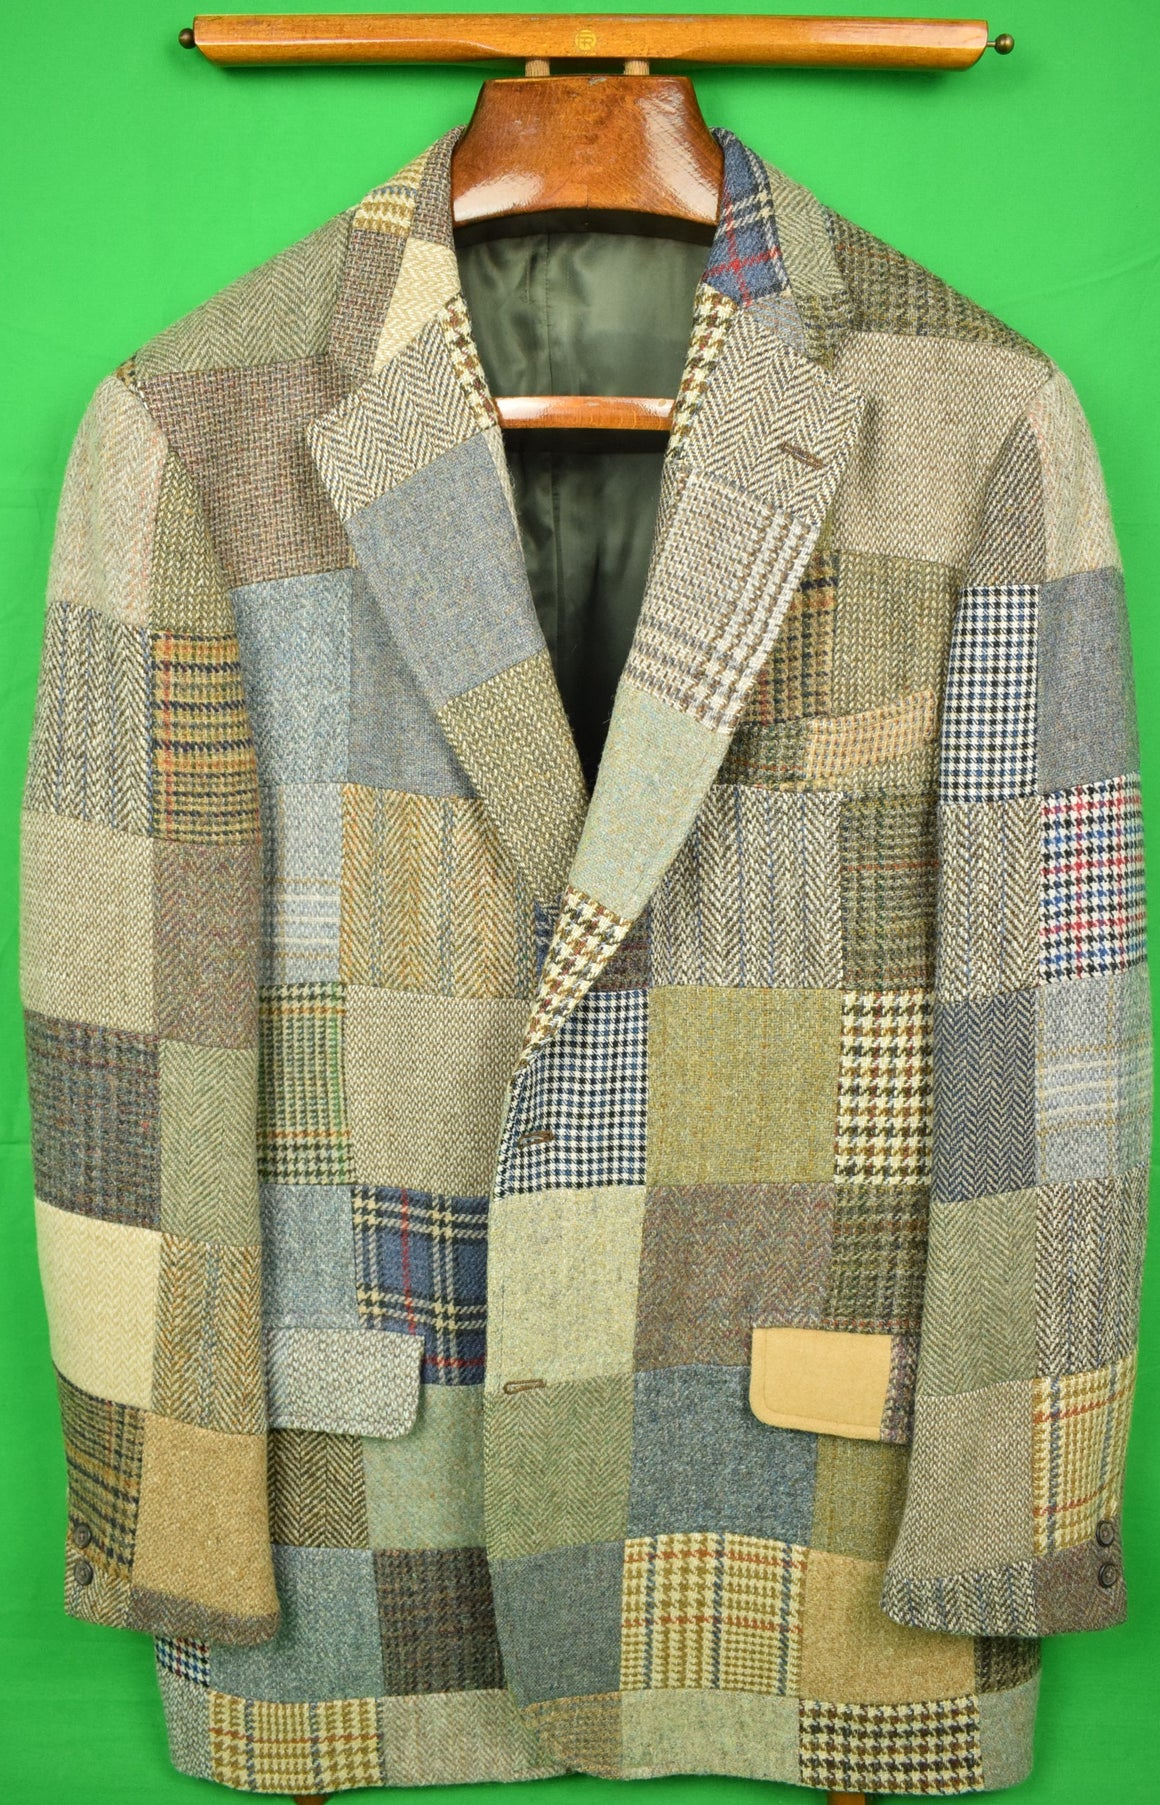 The Andover Shop Patch Panel Tweed Sport Jacket Sz: 48L